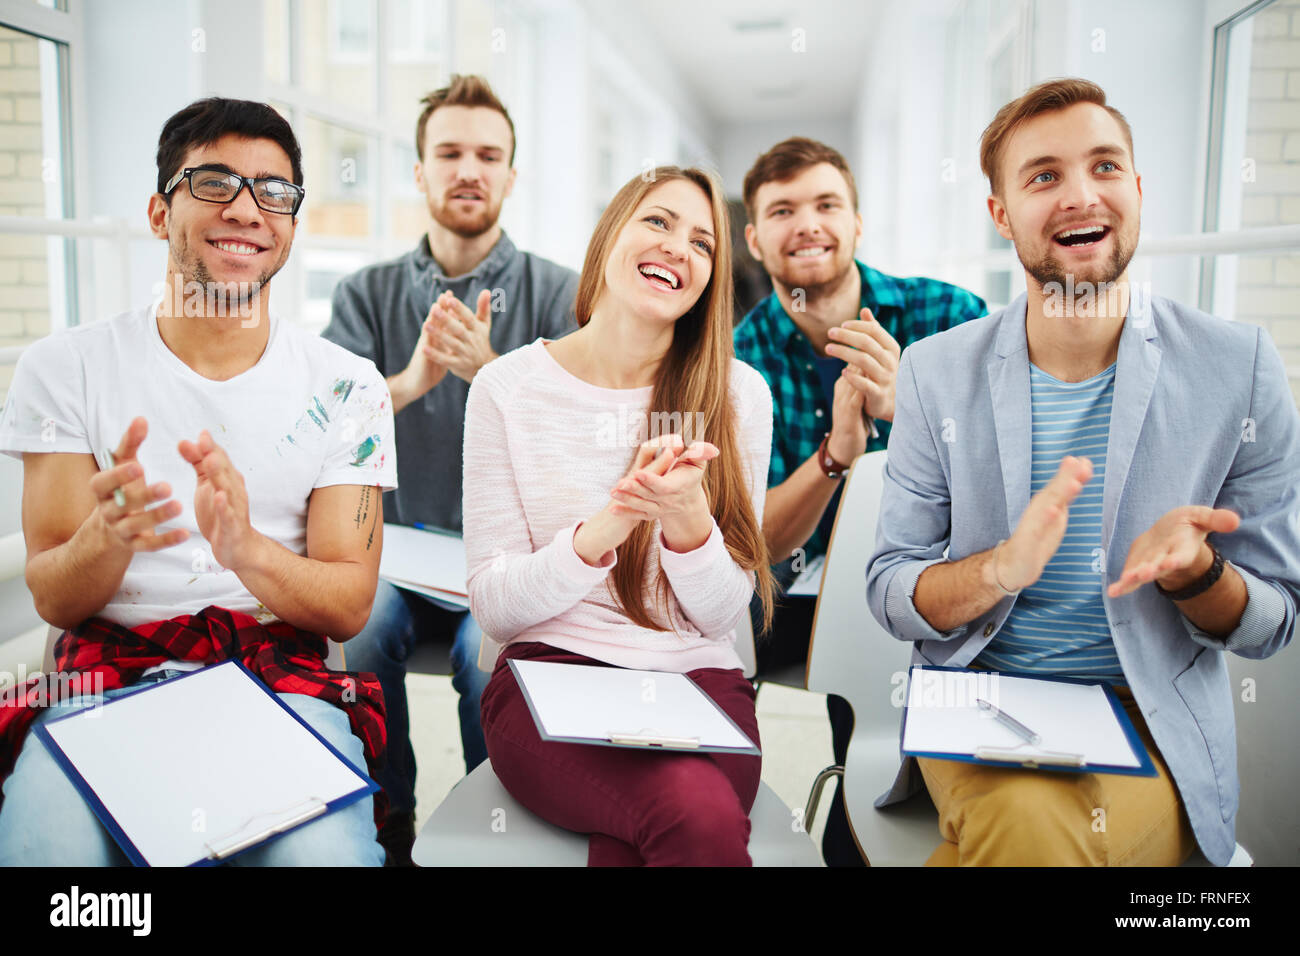 Applauding after lecture - Stock Image